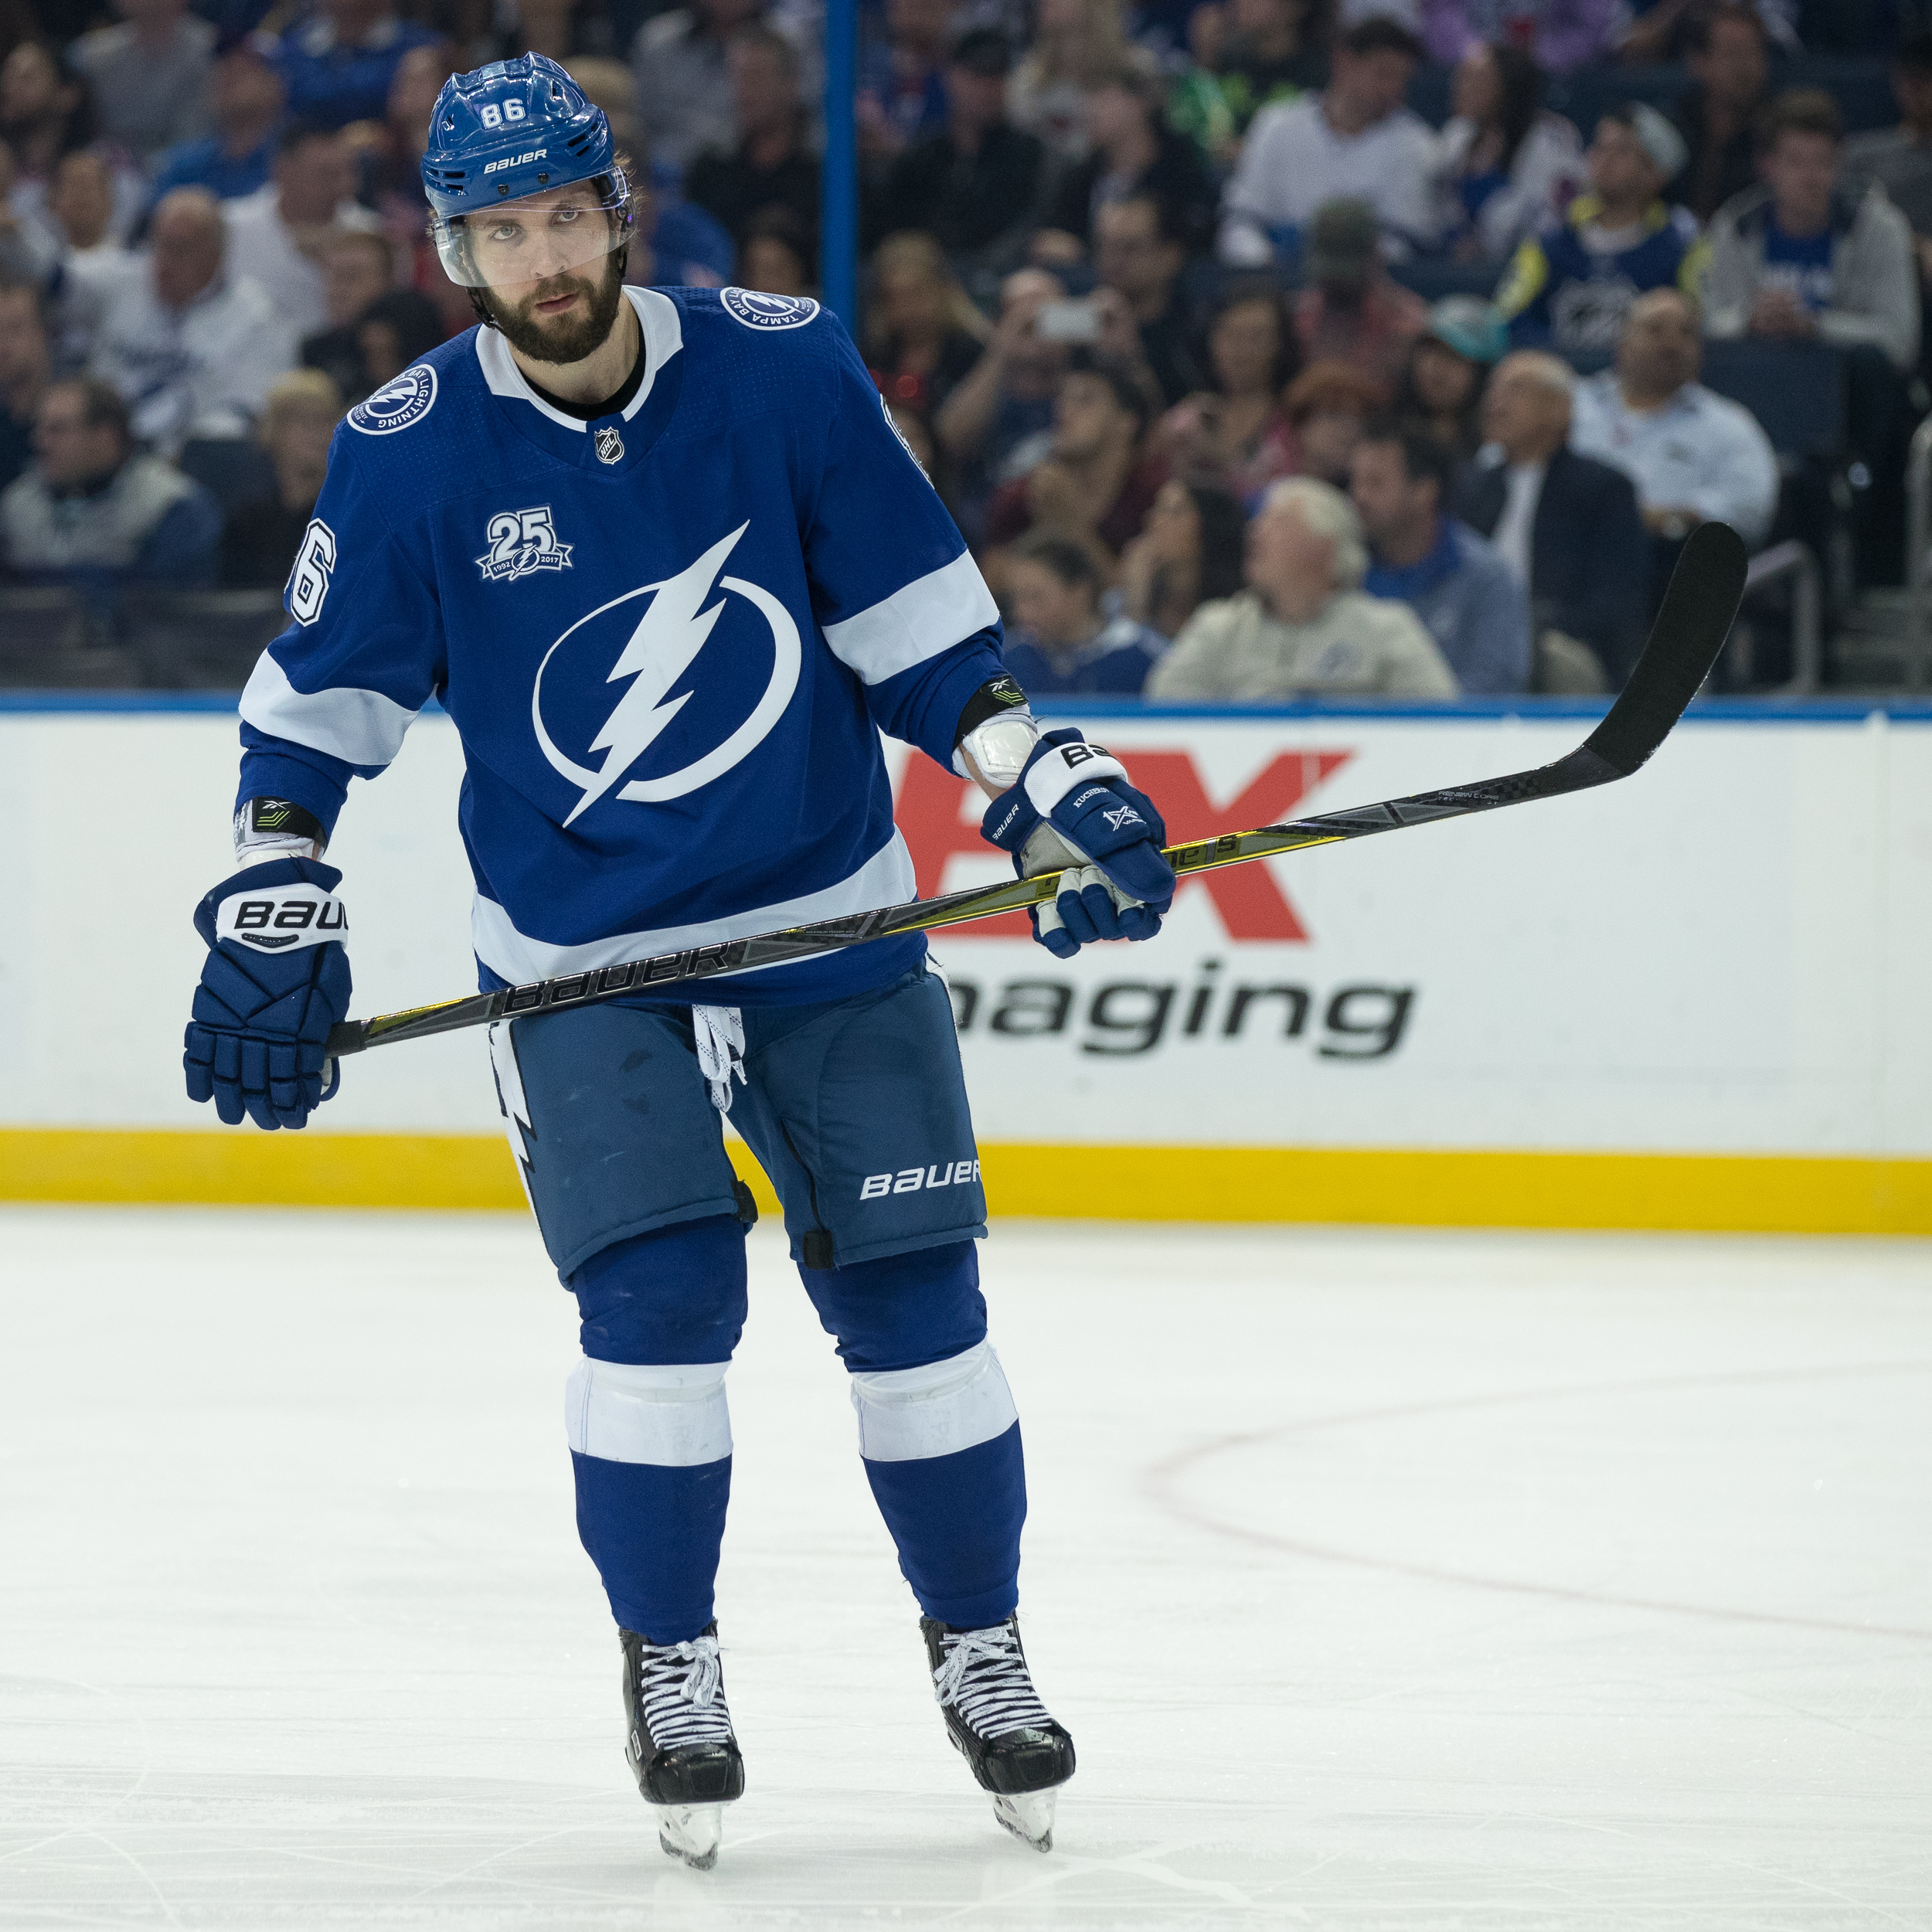 Nikita Kucherov scored his 37th goal of the season./STEVEN MUNCIE